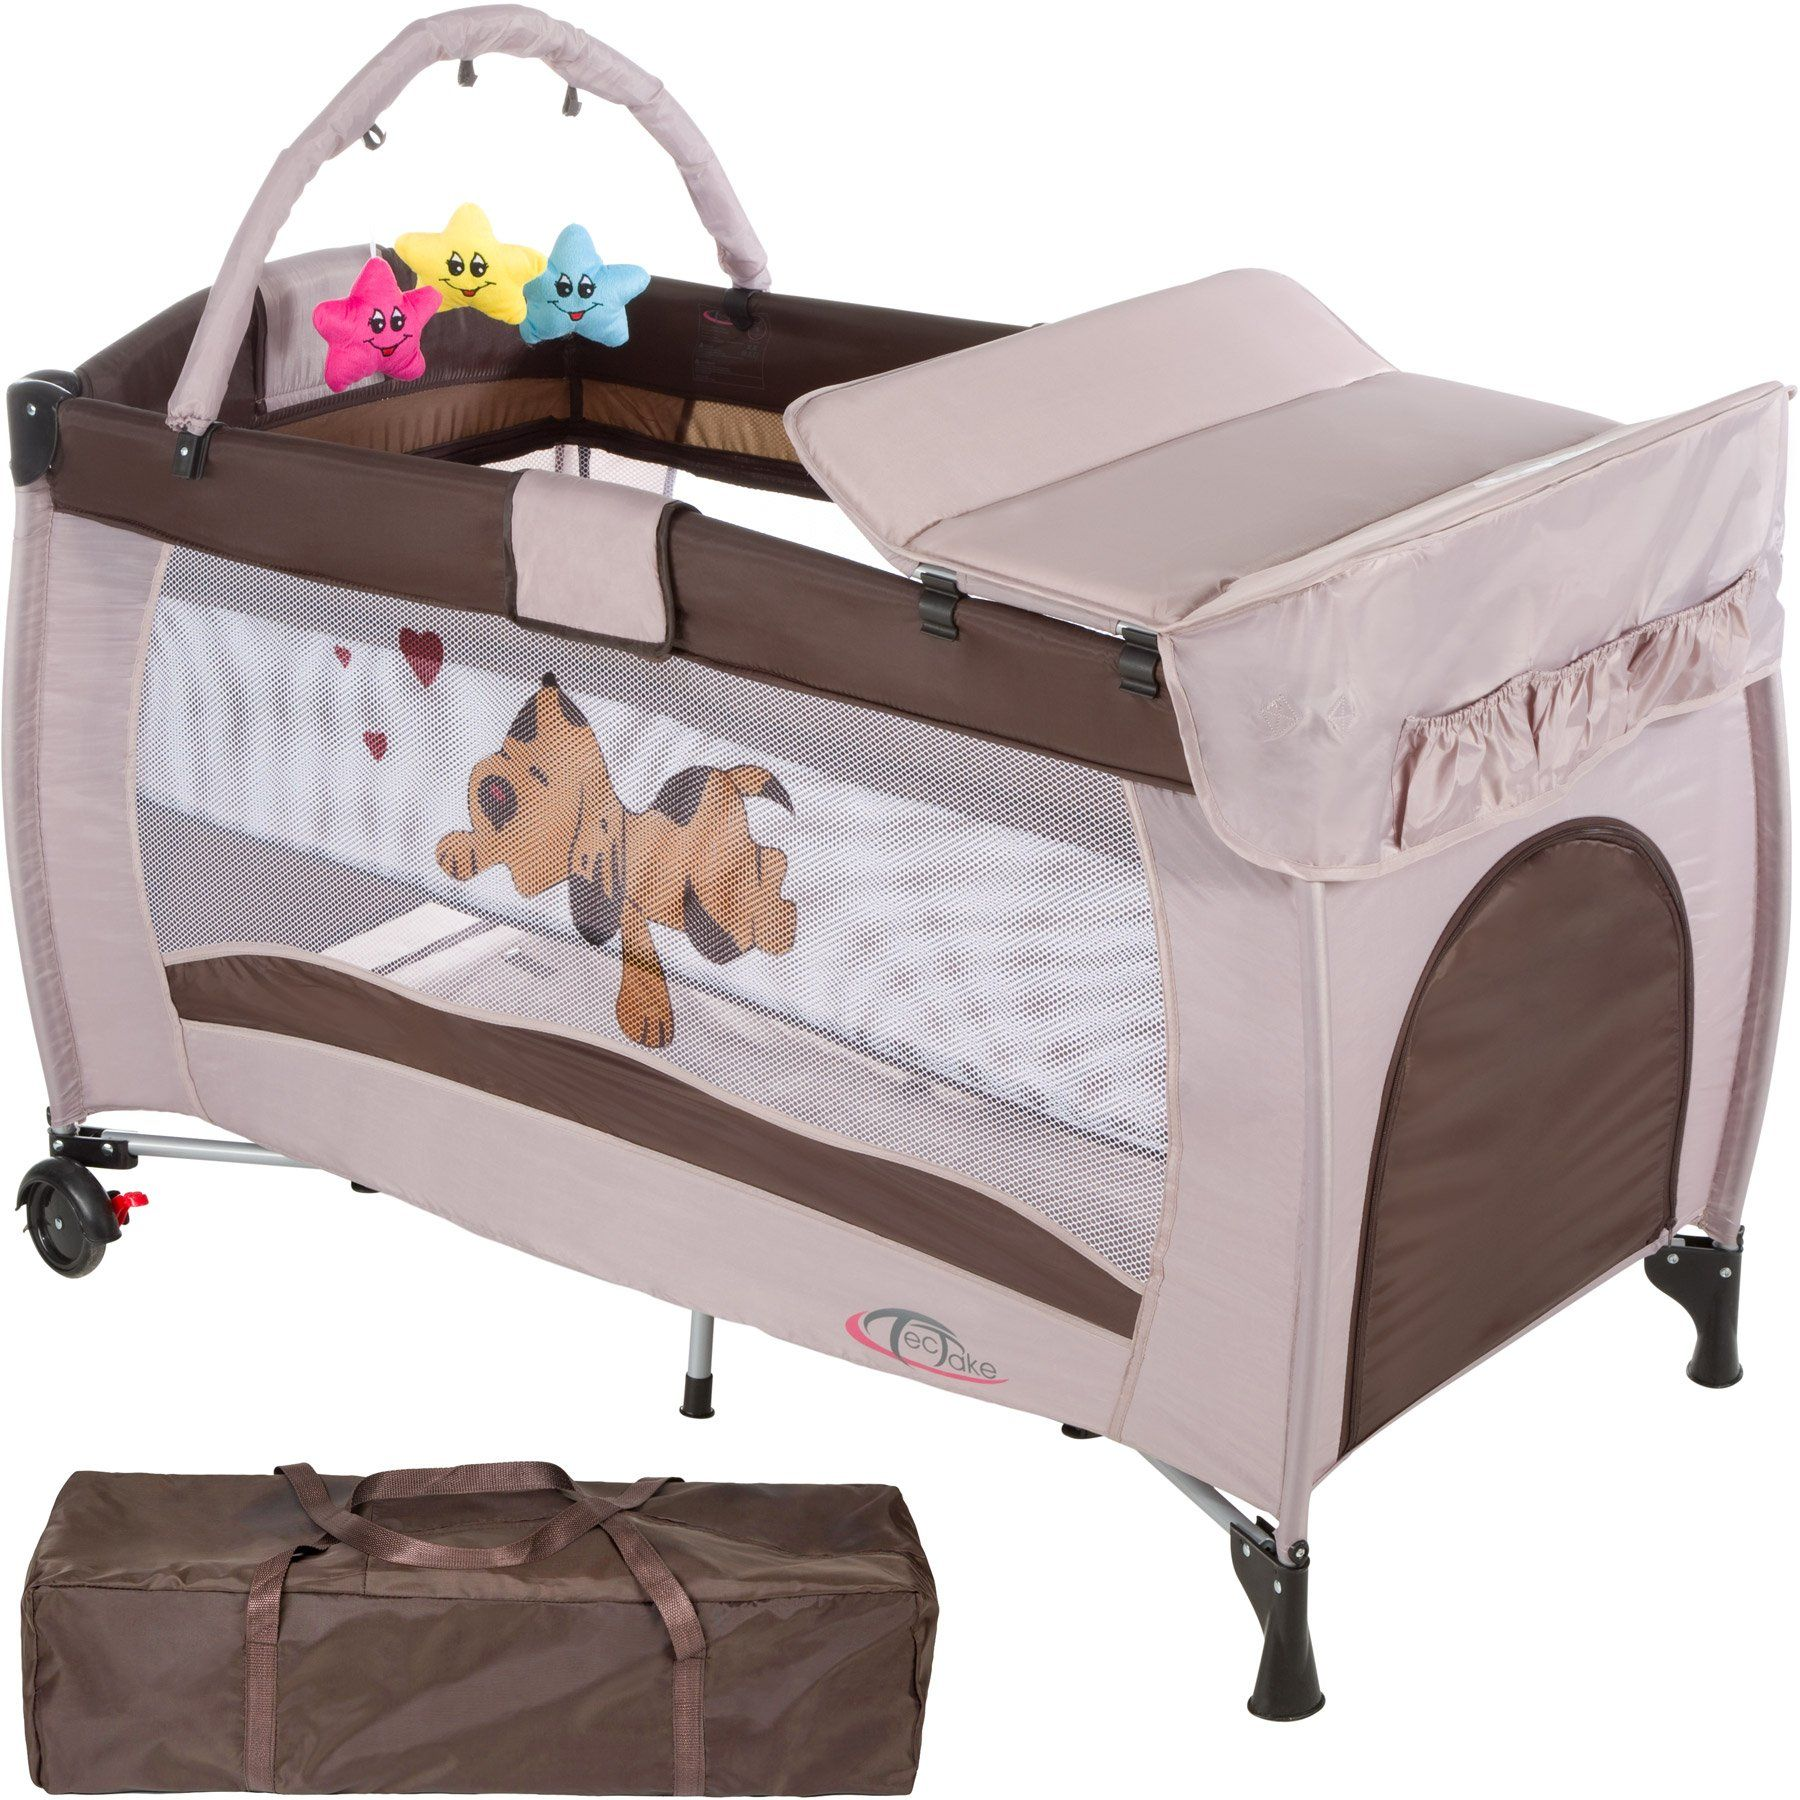 Baby Playpen Height Tectake New Portable Child Baby Travel Cot Bed Playpen With